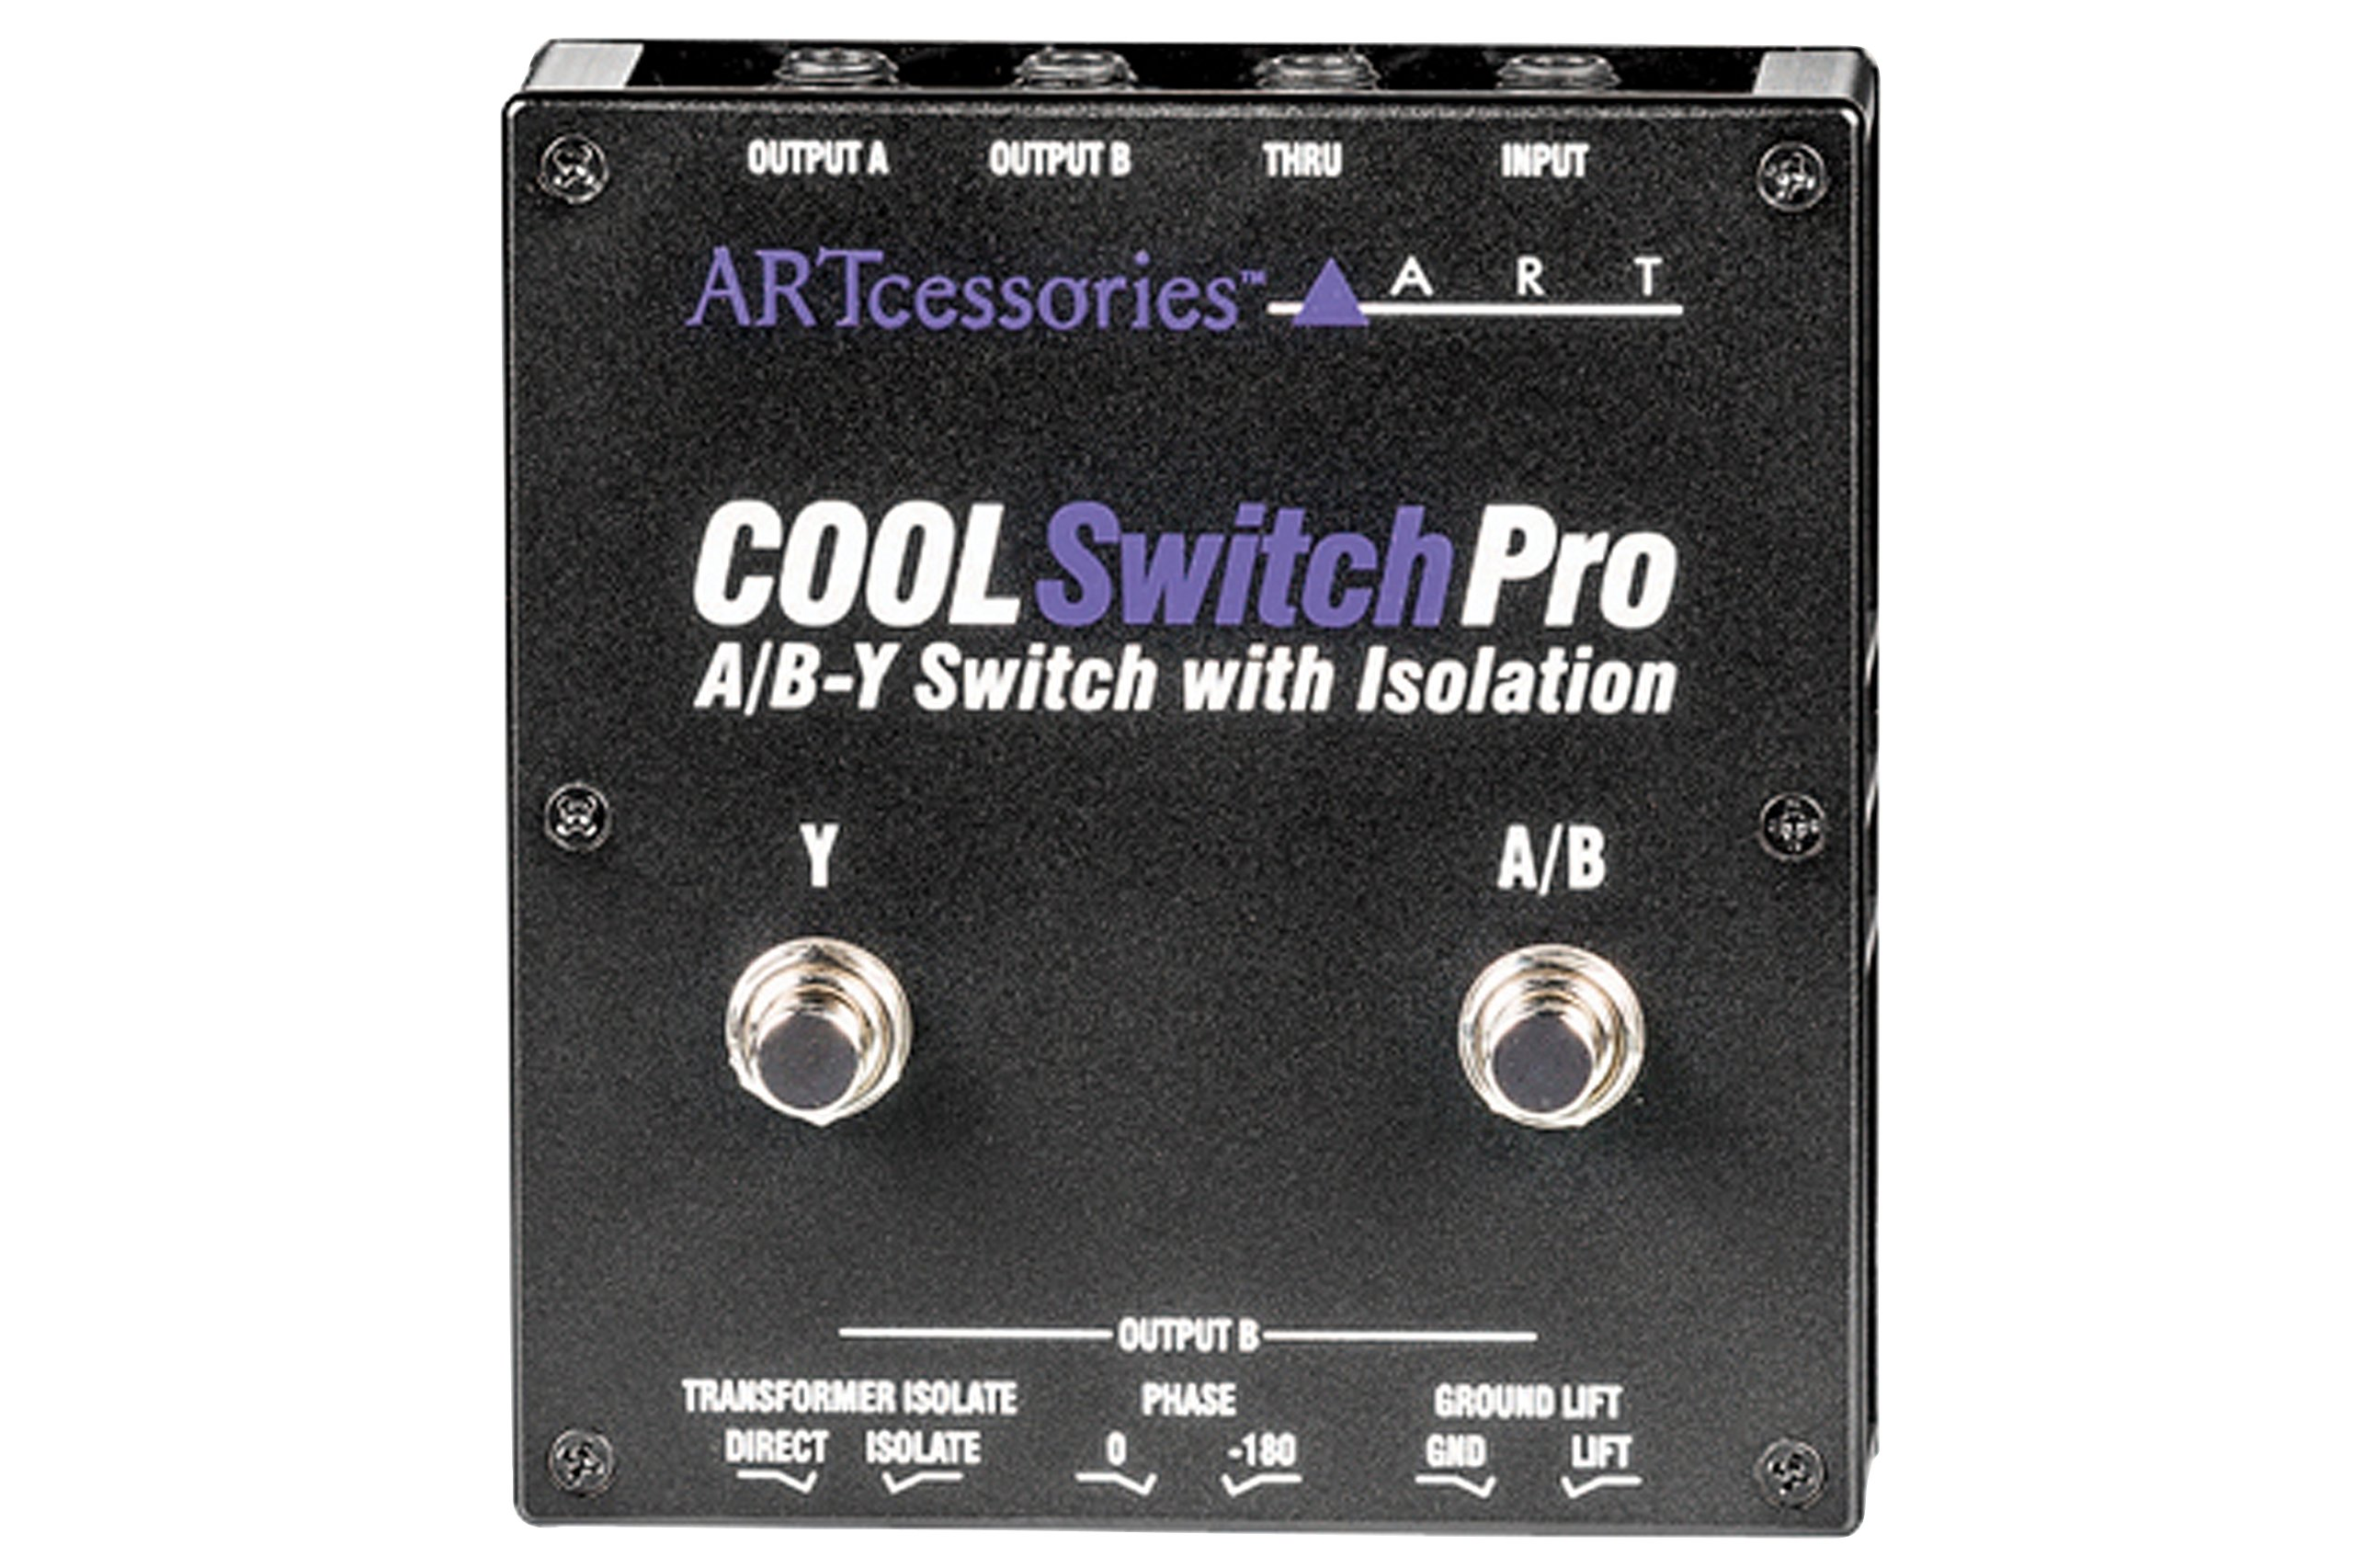 ART CoolSwitchPro Isolated A/B-Y Foot Switch with Isolation